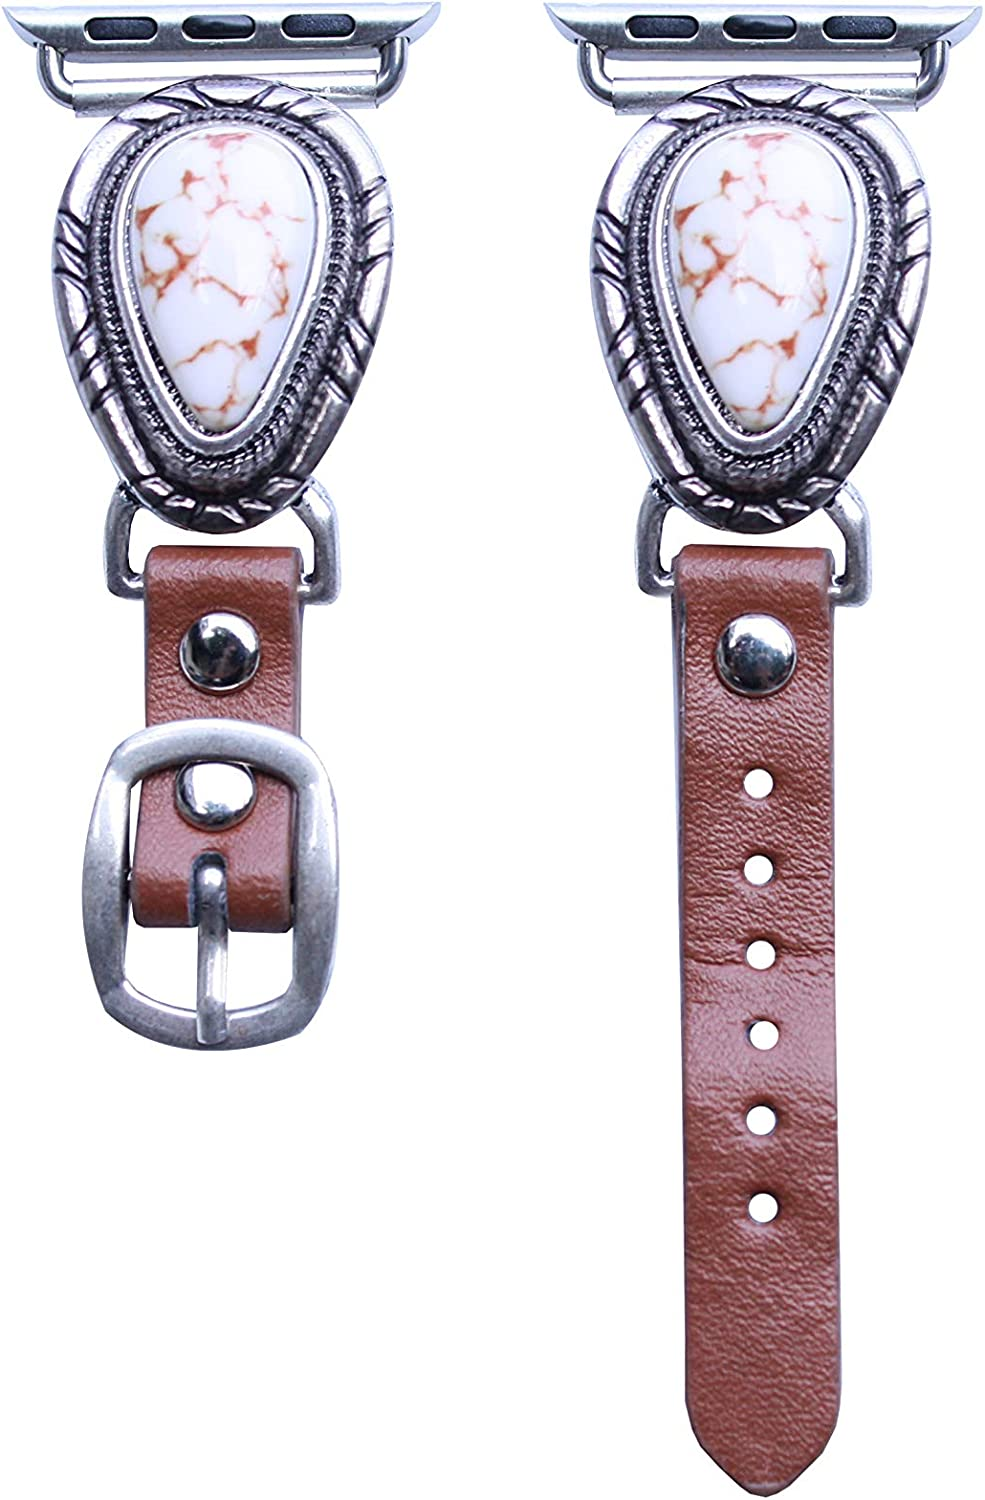 40mm/38mm Compatible for Apple Watch, Delicate Western White Teardrop Watch Band No. 6W